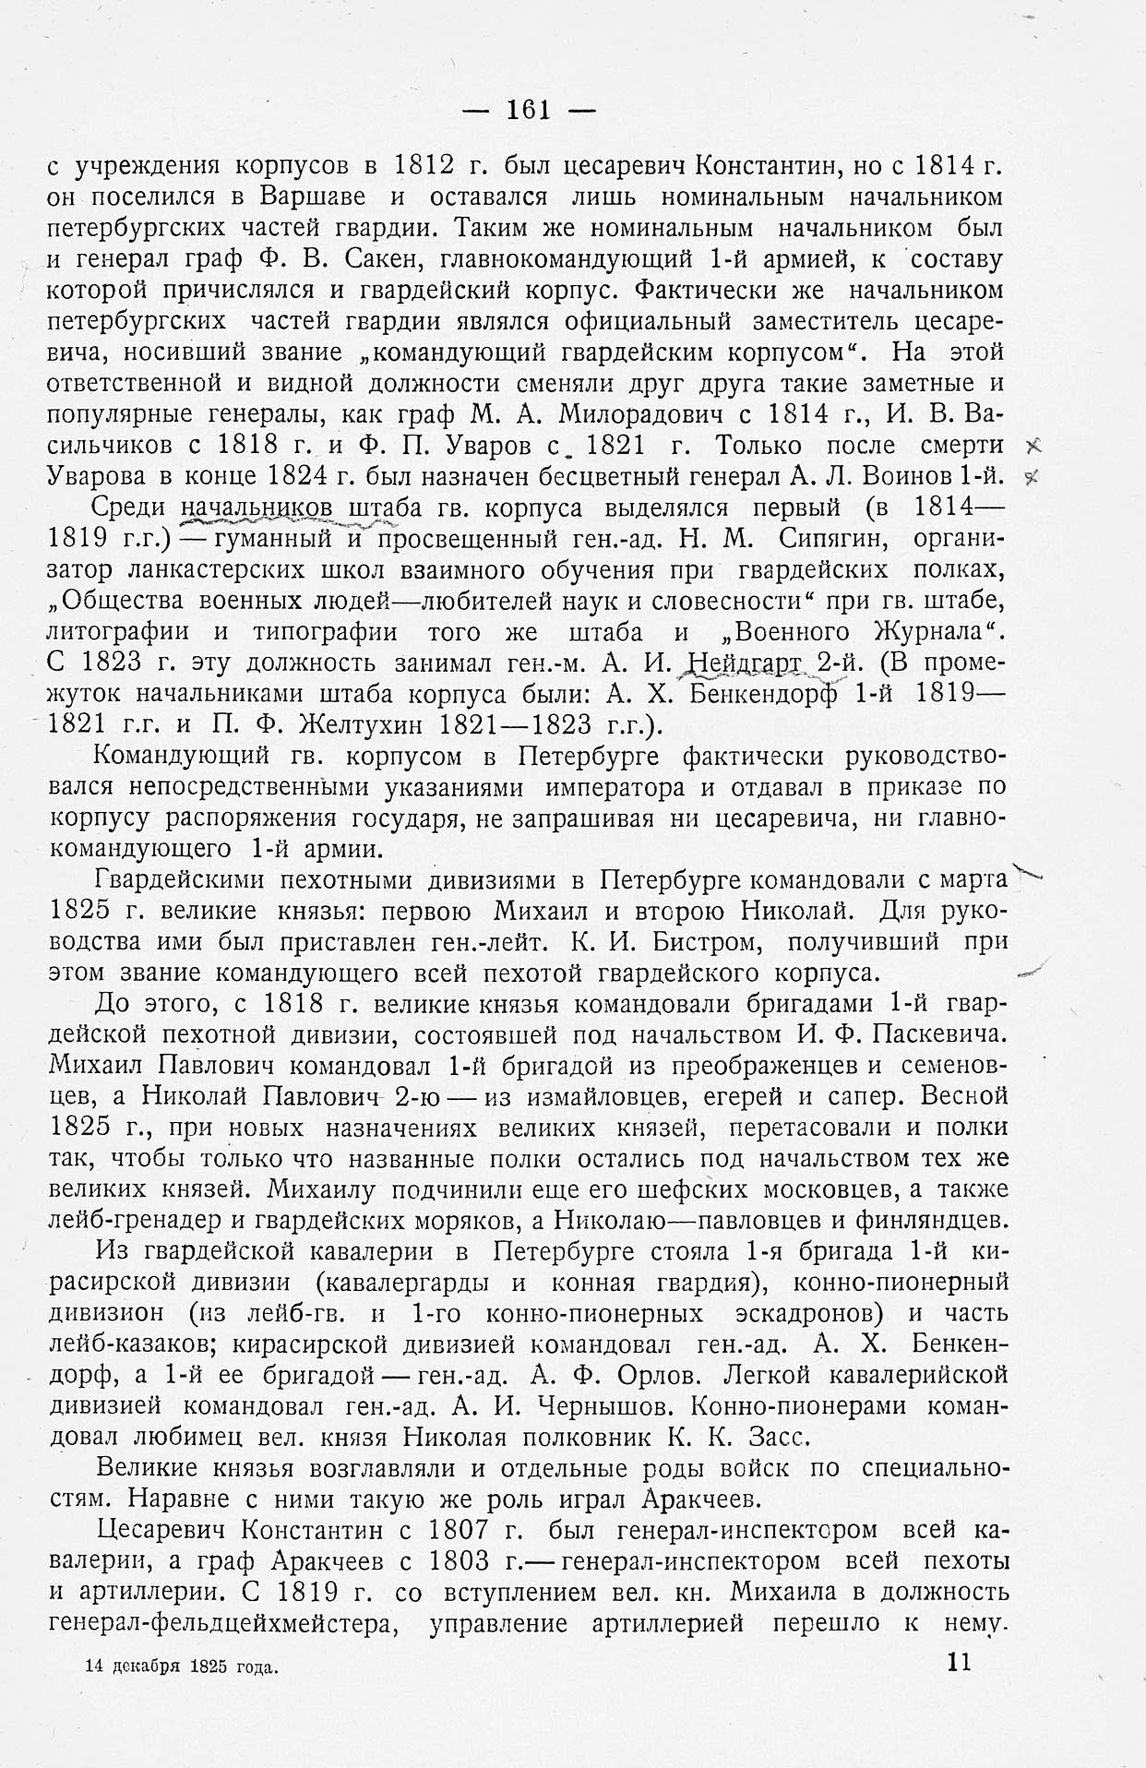 http://elib.shpl.ru/pages/566058/zooms/7